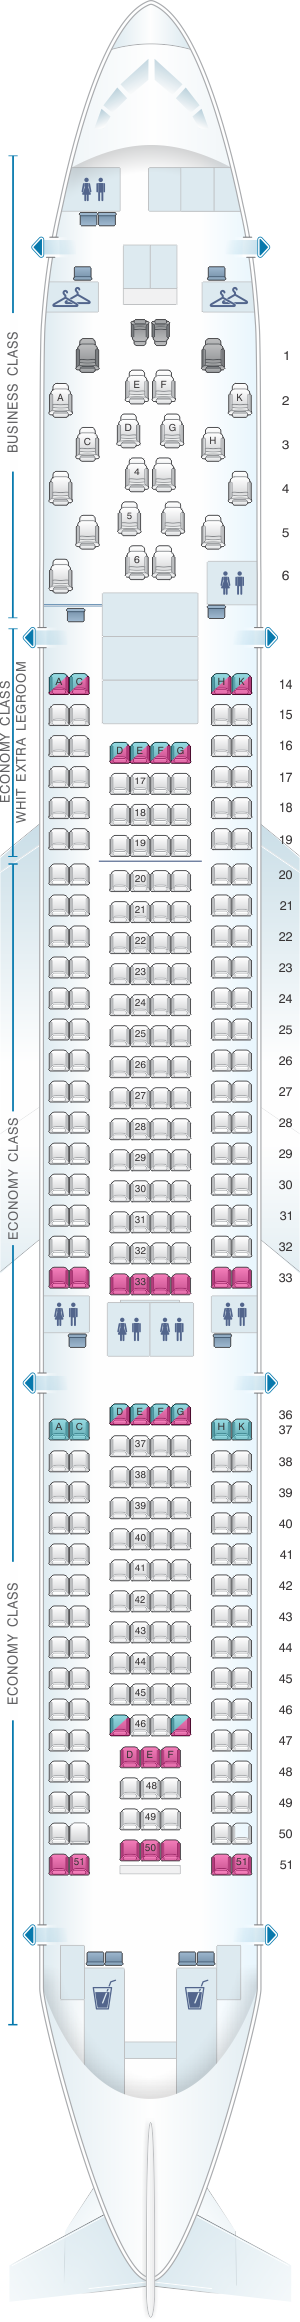 Seat map for Malaysia Airlines Airbus A330 200